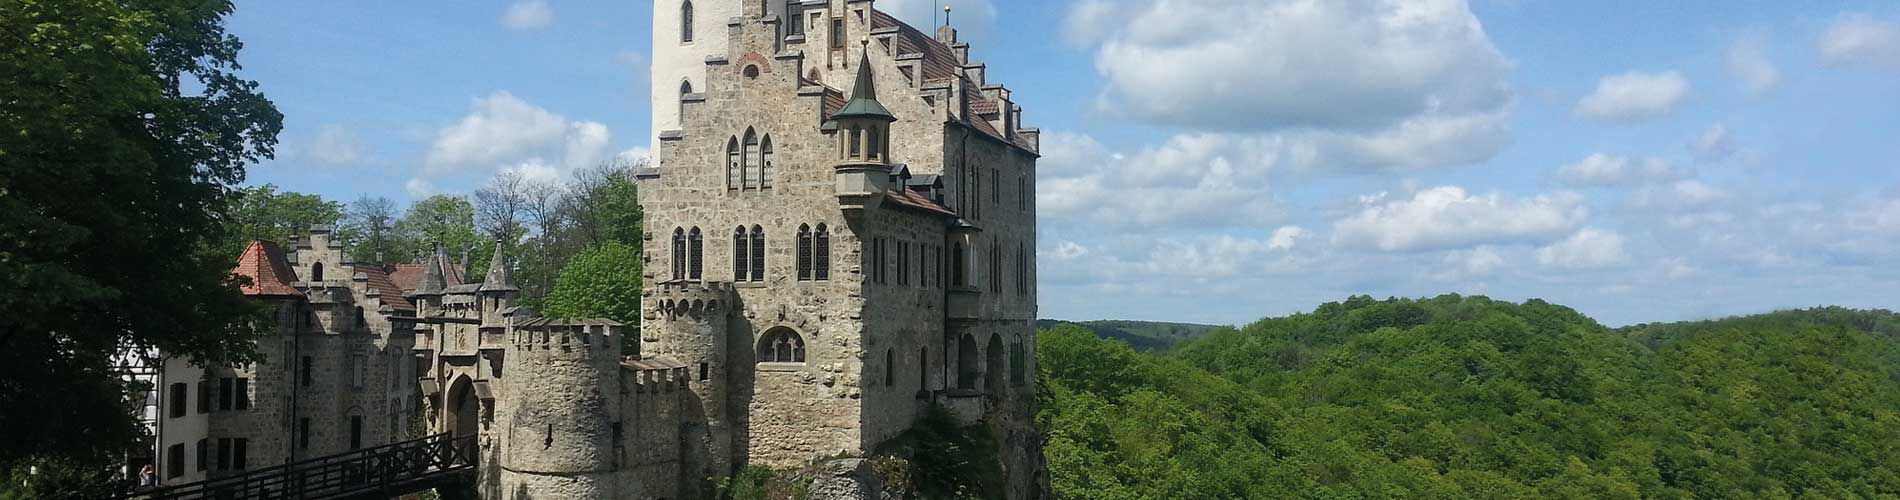 Blog_TopCastlesGermany_Lichtenstein-Castle_1900x500